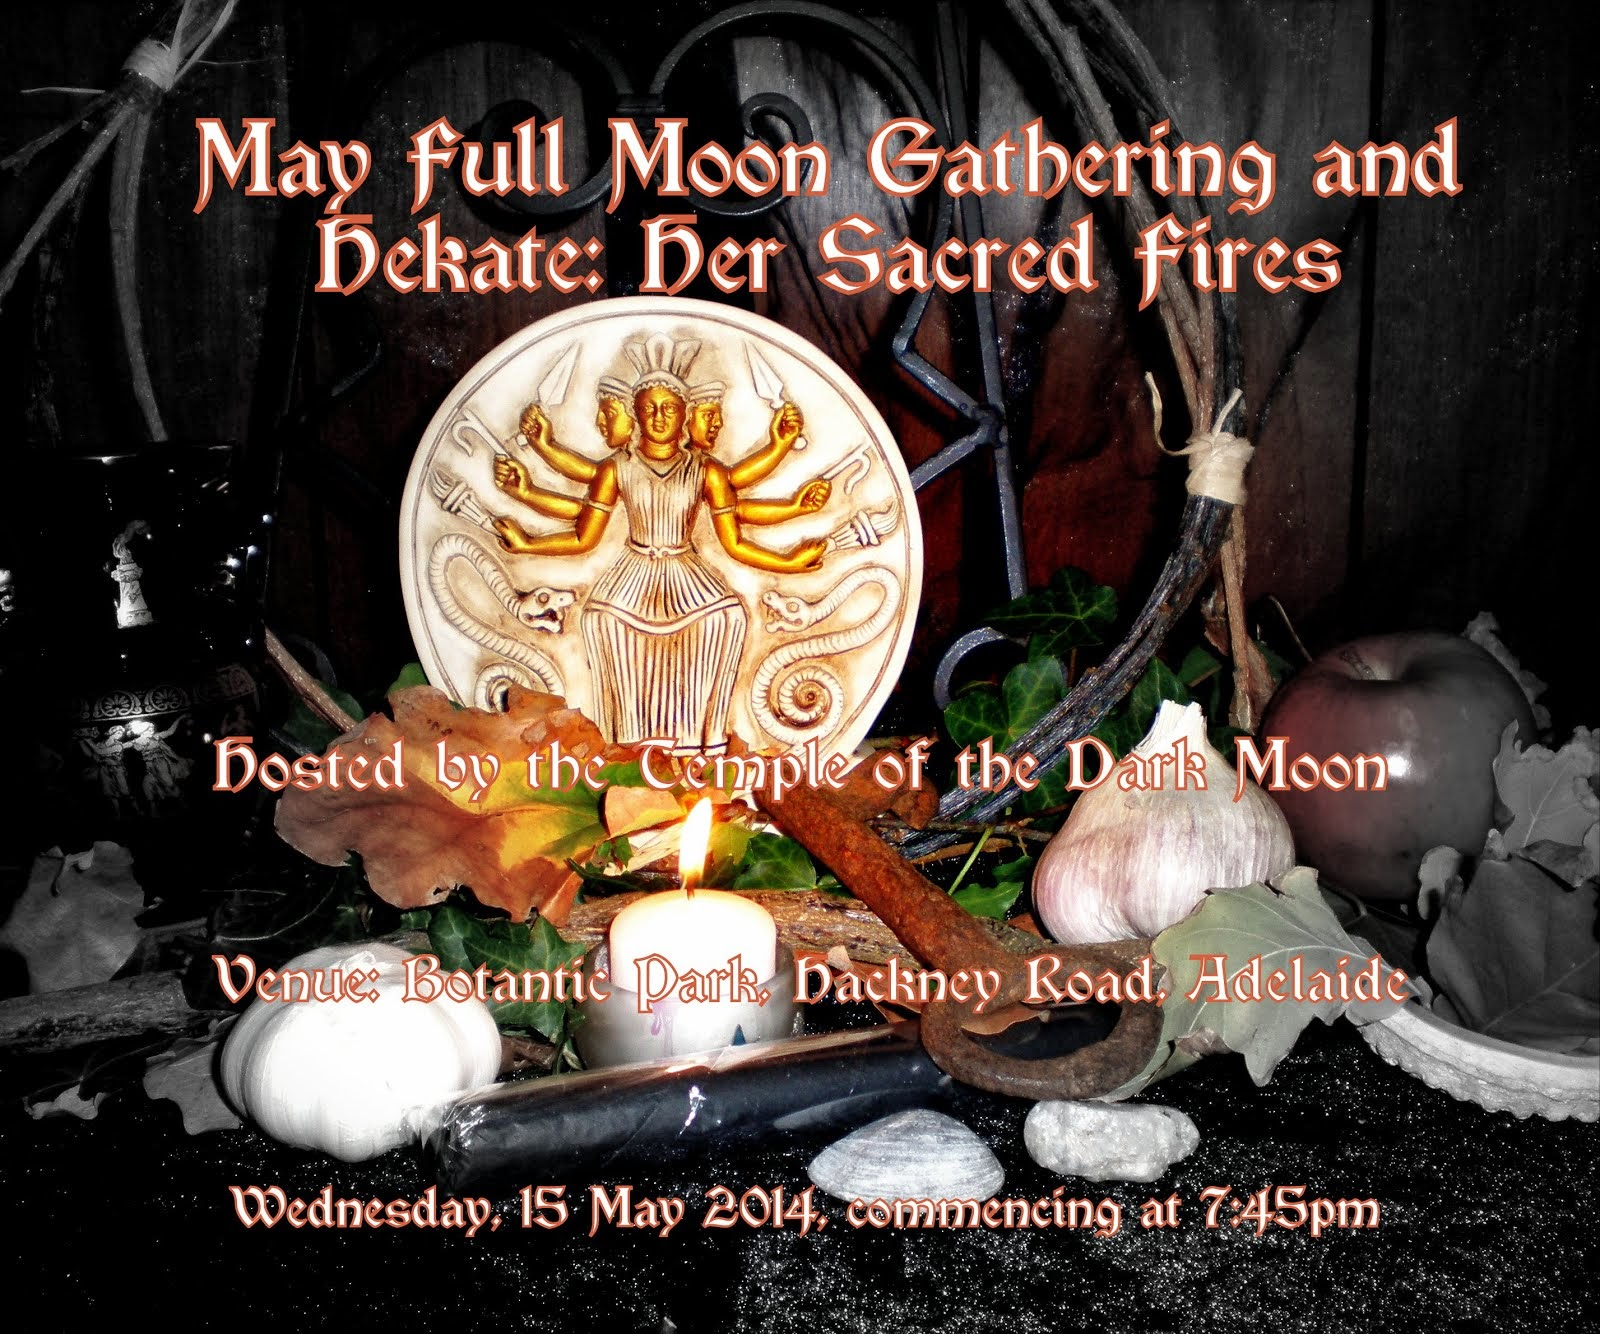 Hekate Her Sacred Fires and May Full Moon Gathering